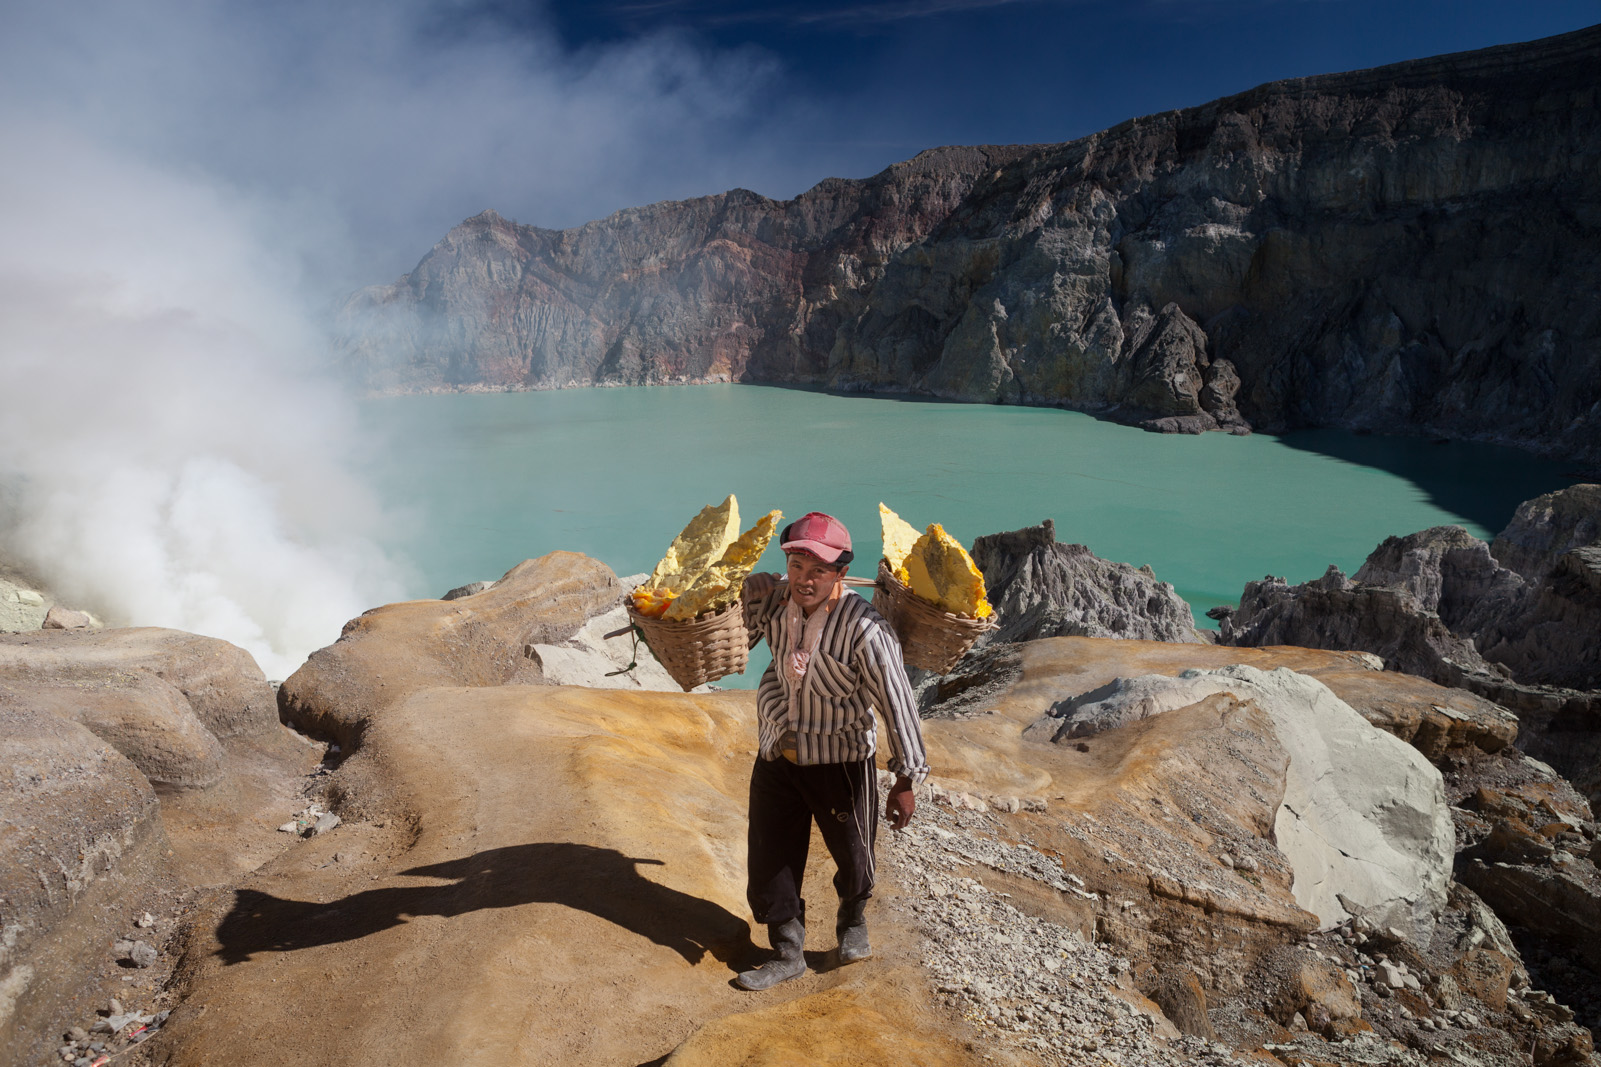 Sulfur worker, Ijen Crater, Banyuwangi, East Java